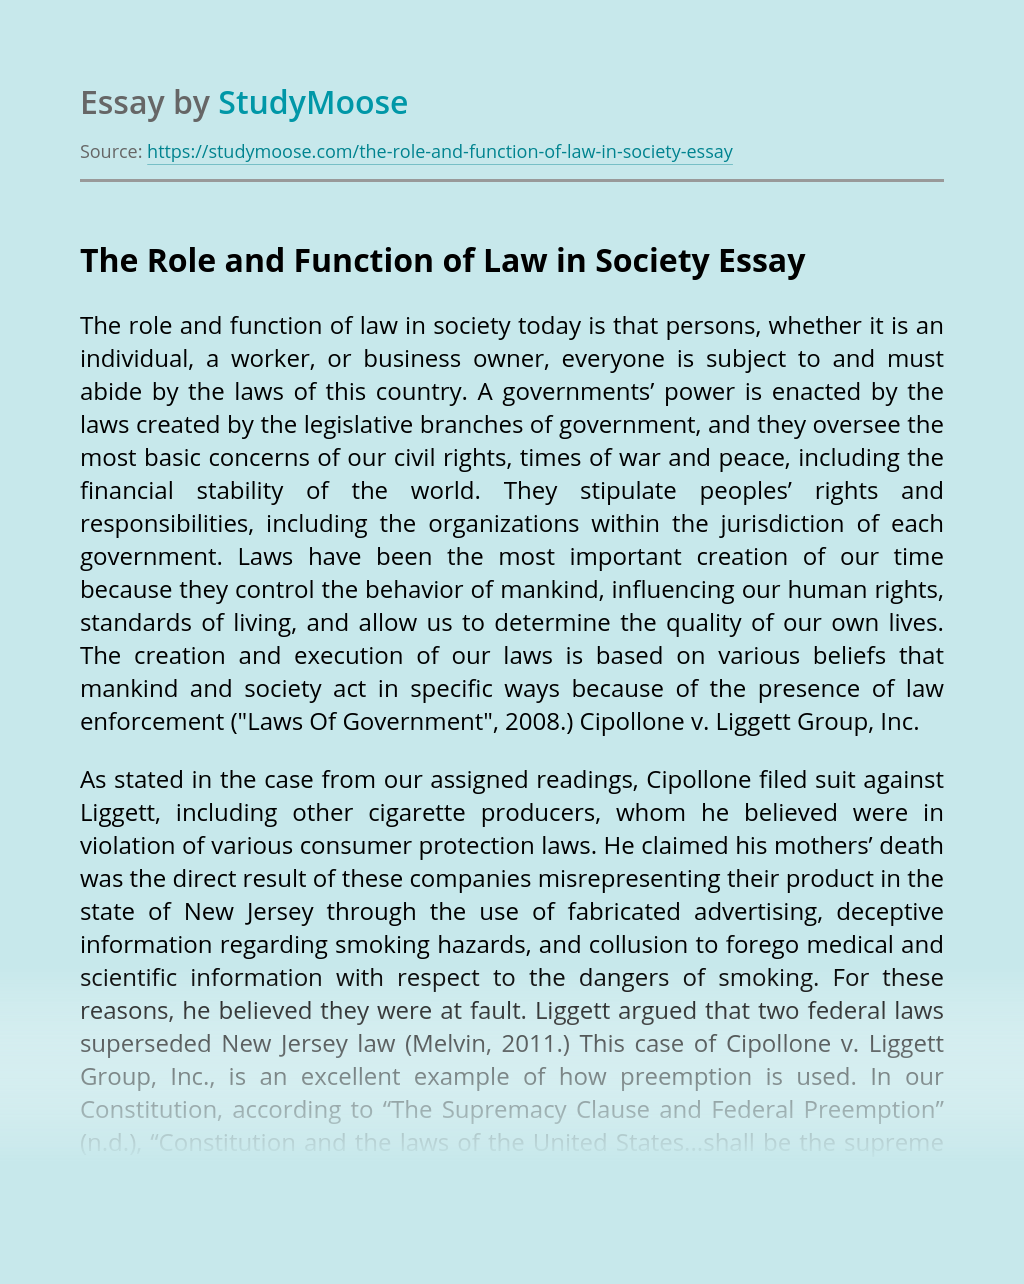 The Role and Function of Law in Society